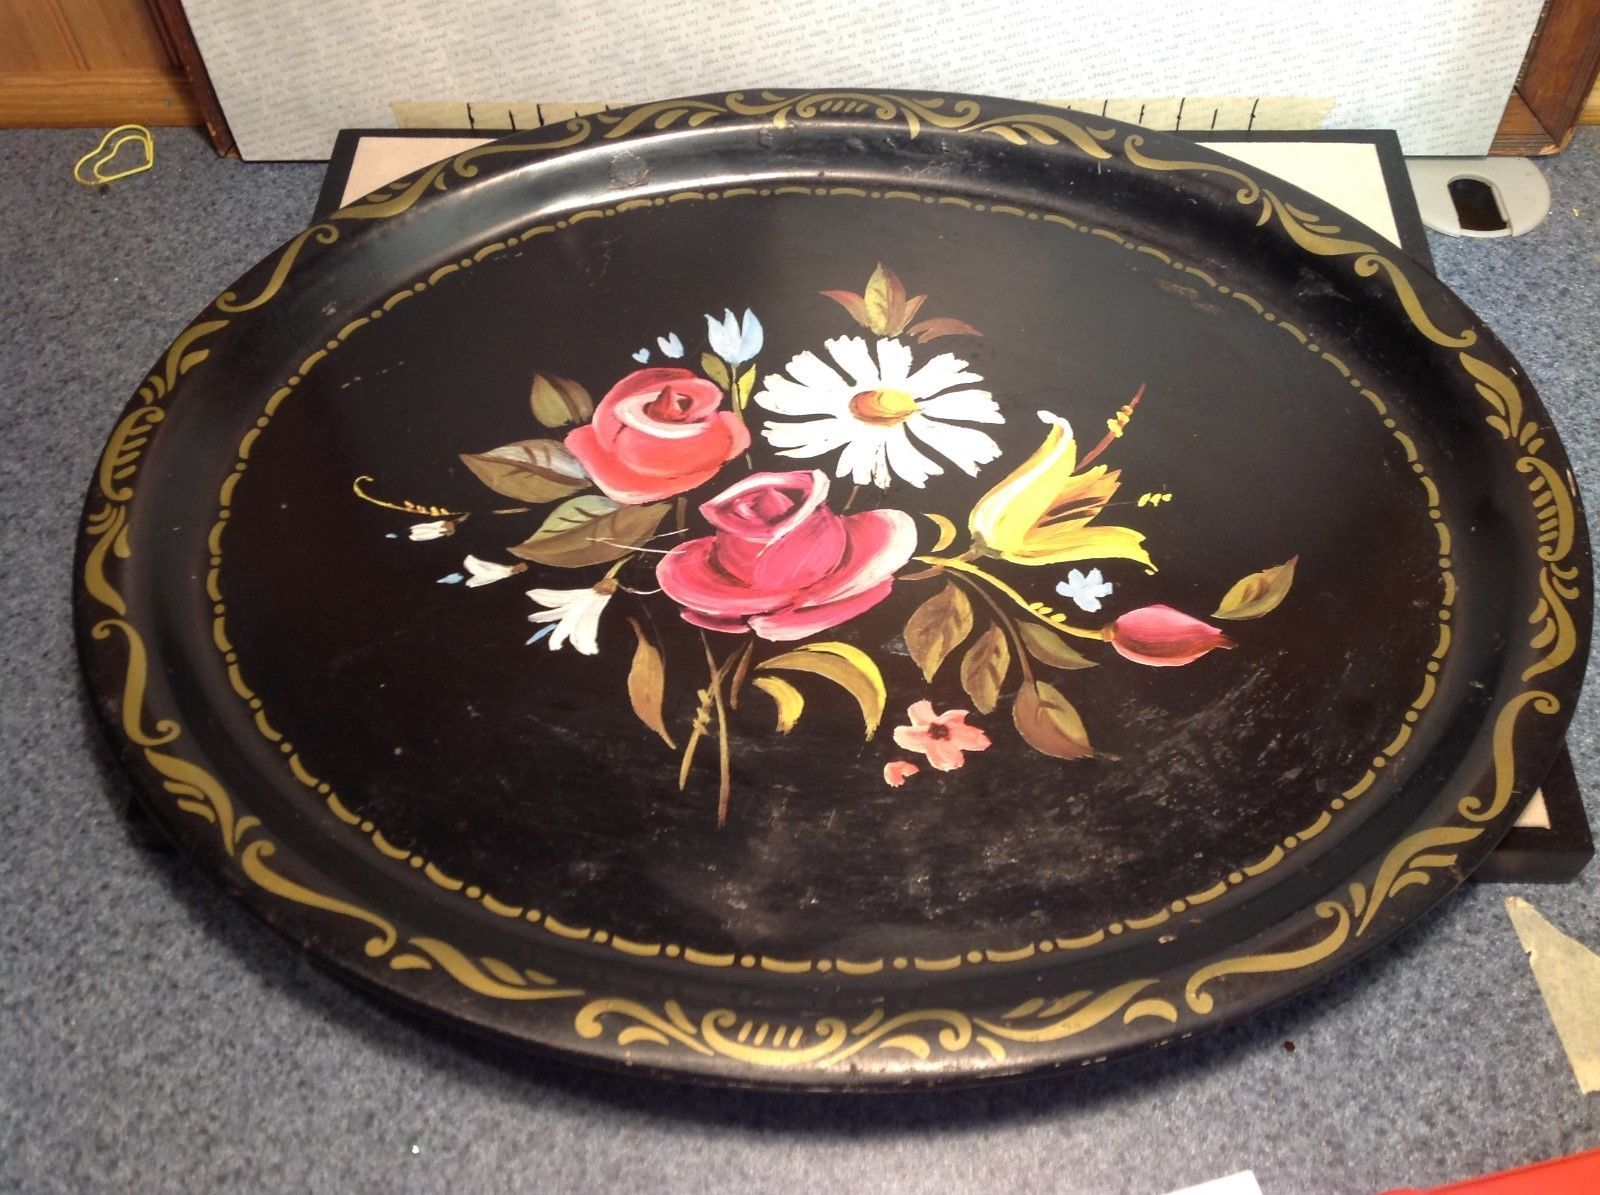 Vintage Metal Oval Serving Platter